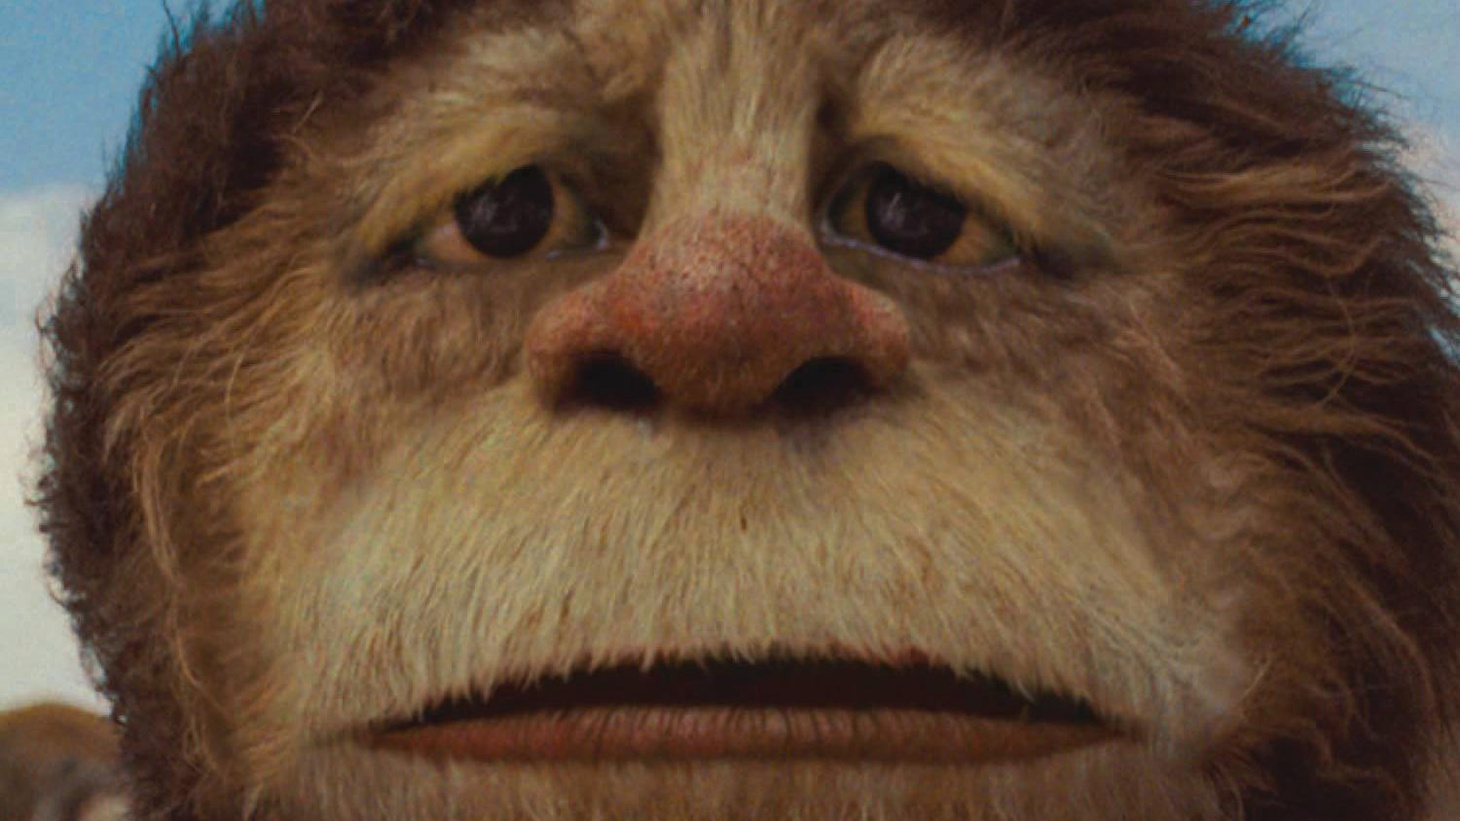 The new film, Where the Wild Things Are is a beautiful and imaginative adaption by director Spike Jonze of the classic children's book by Maurice Sendek -- and the soundtrack by Karen O & the Kids follows that same inspiration...